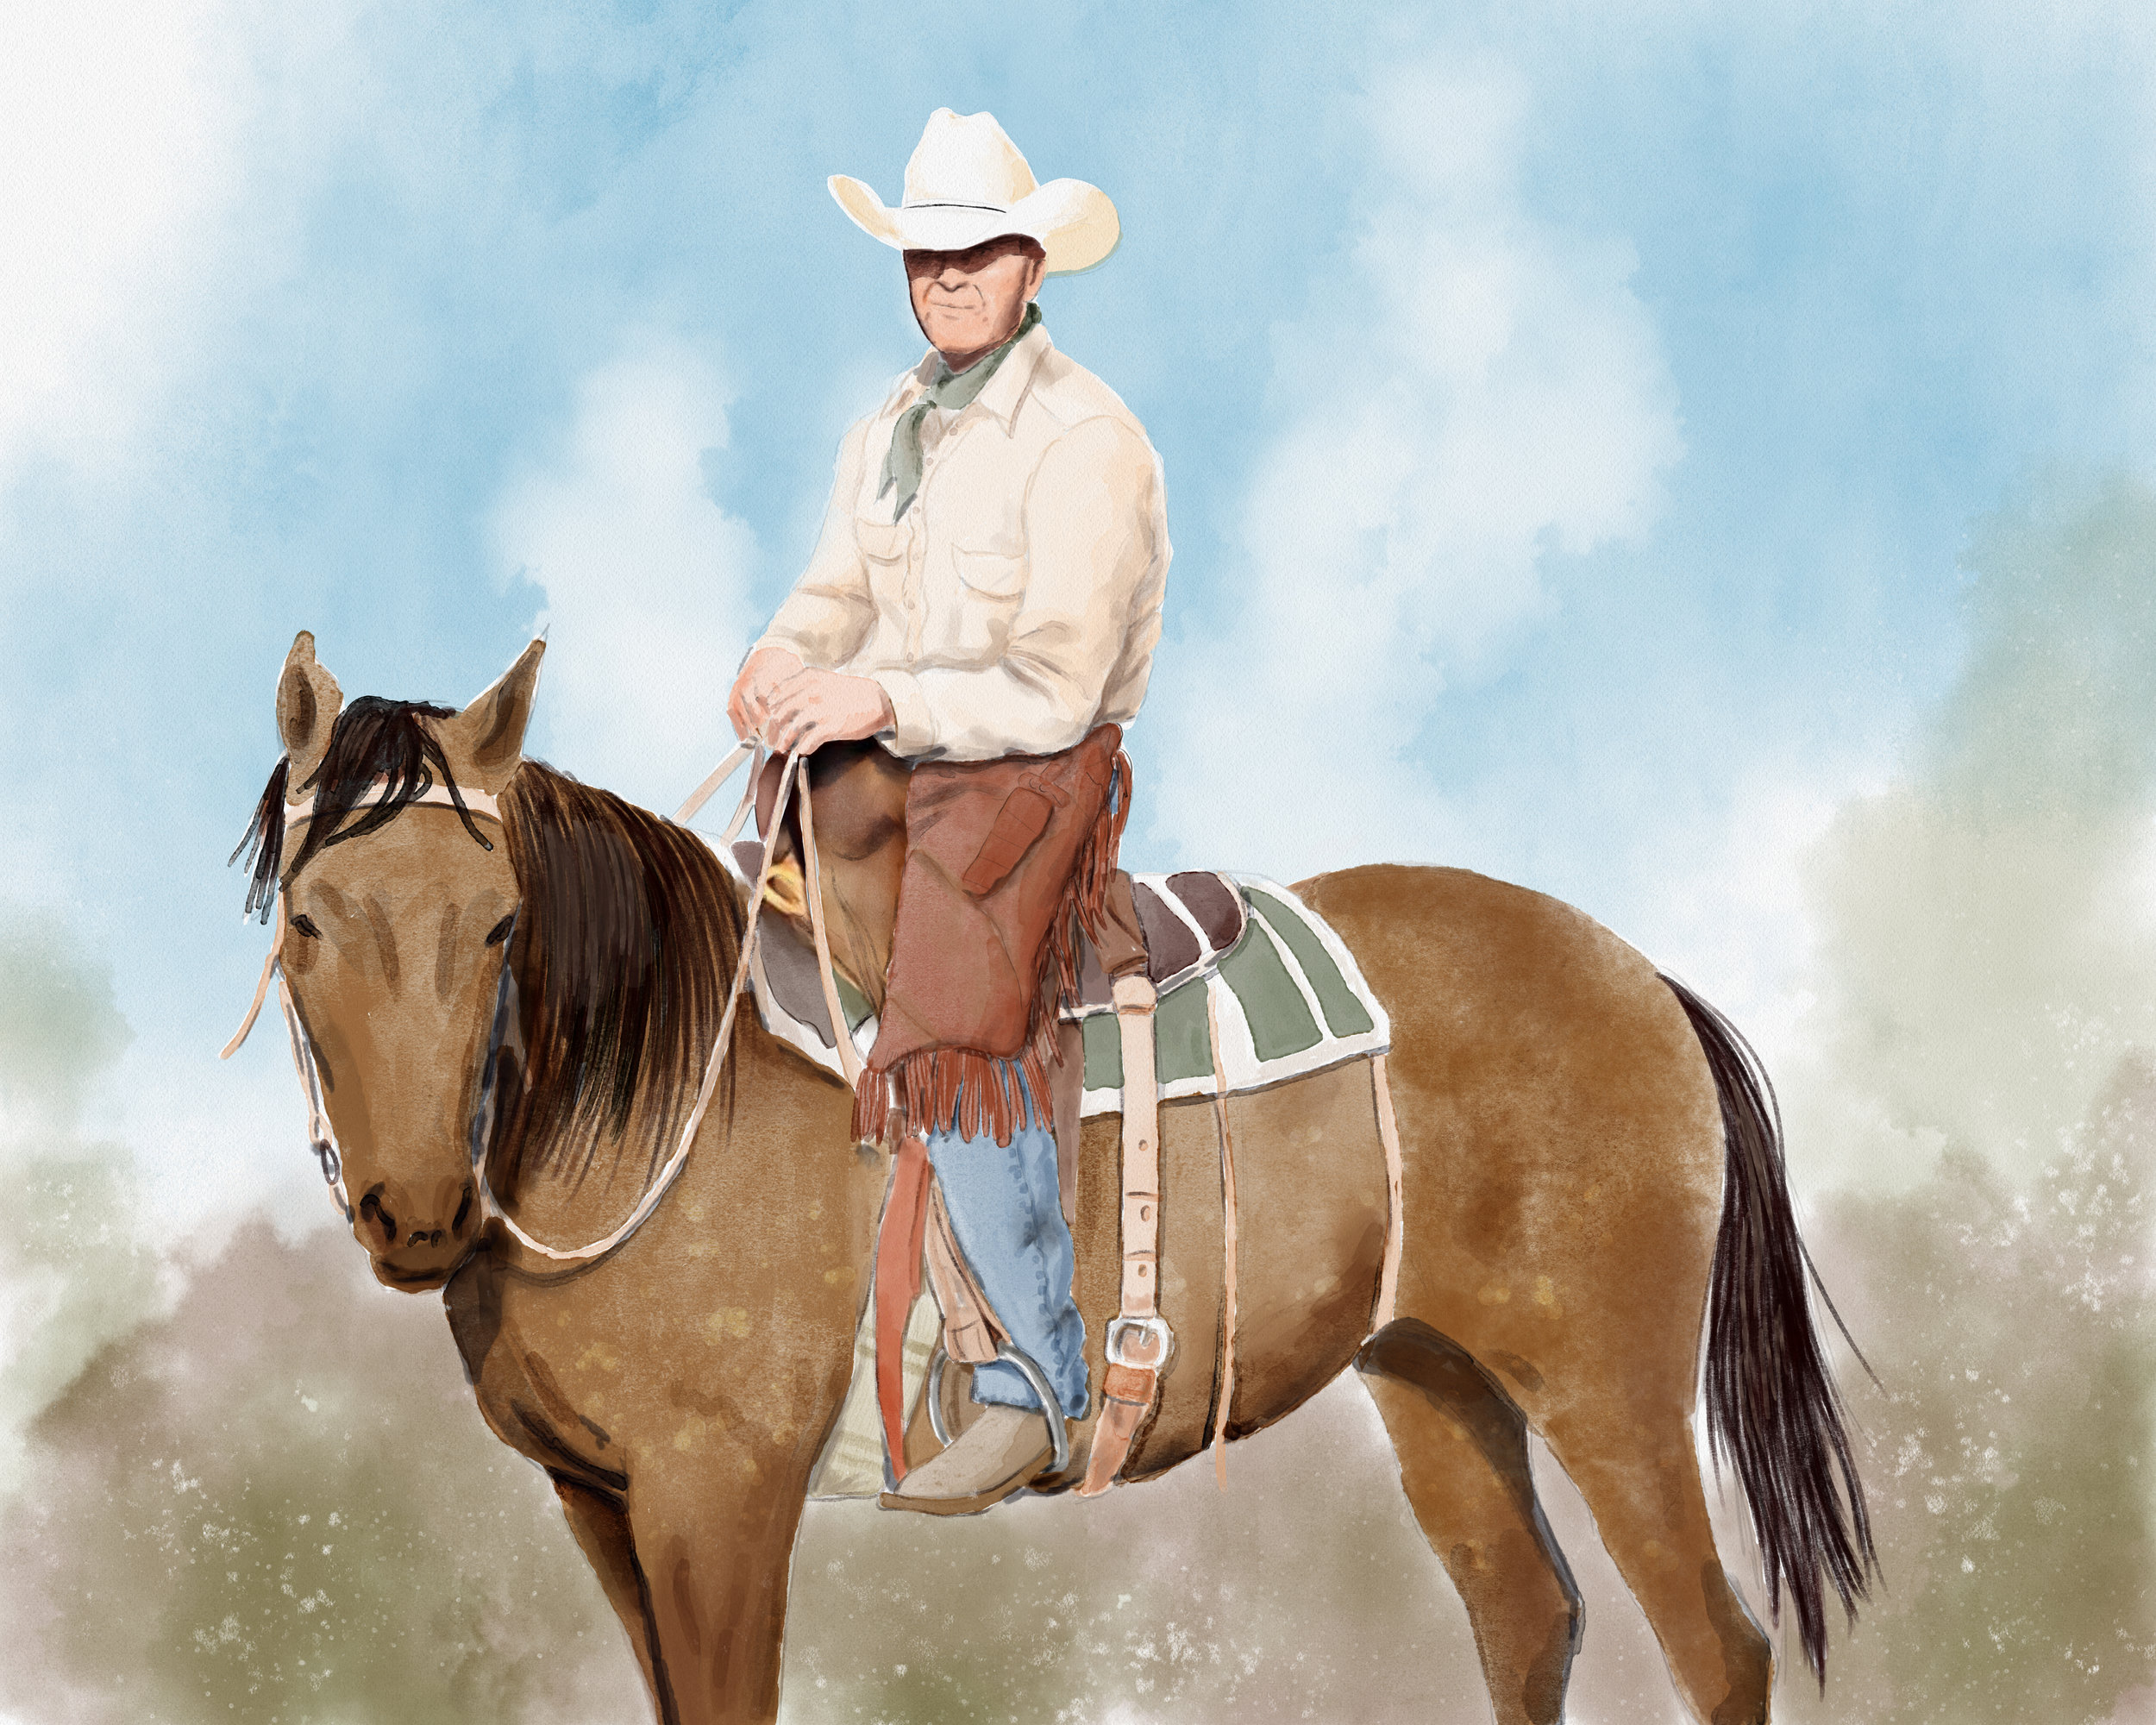 Cowboy one copy 11x14 plus 1 inch border.jpg